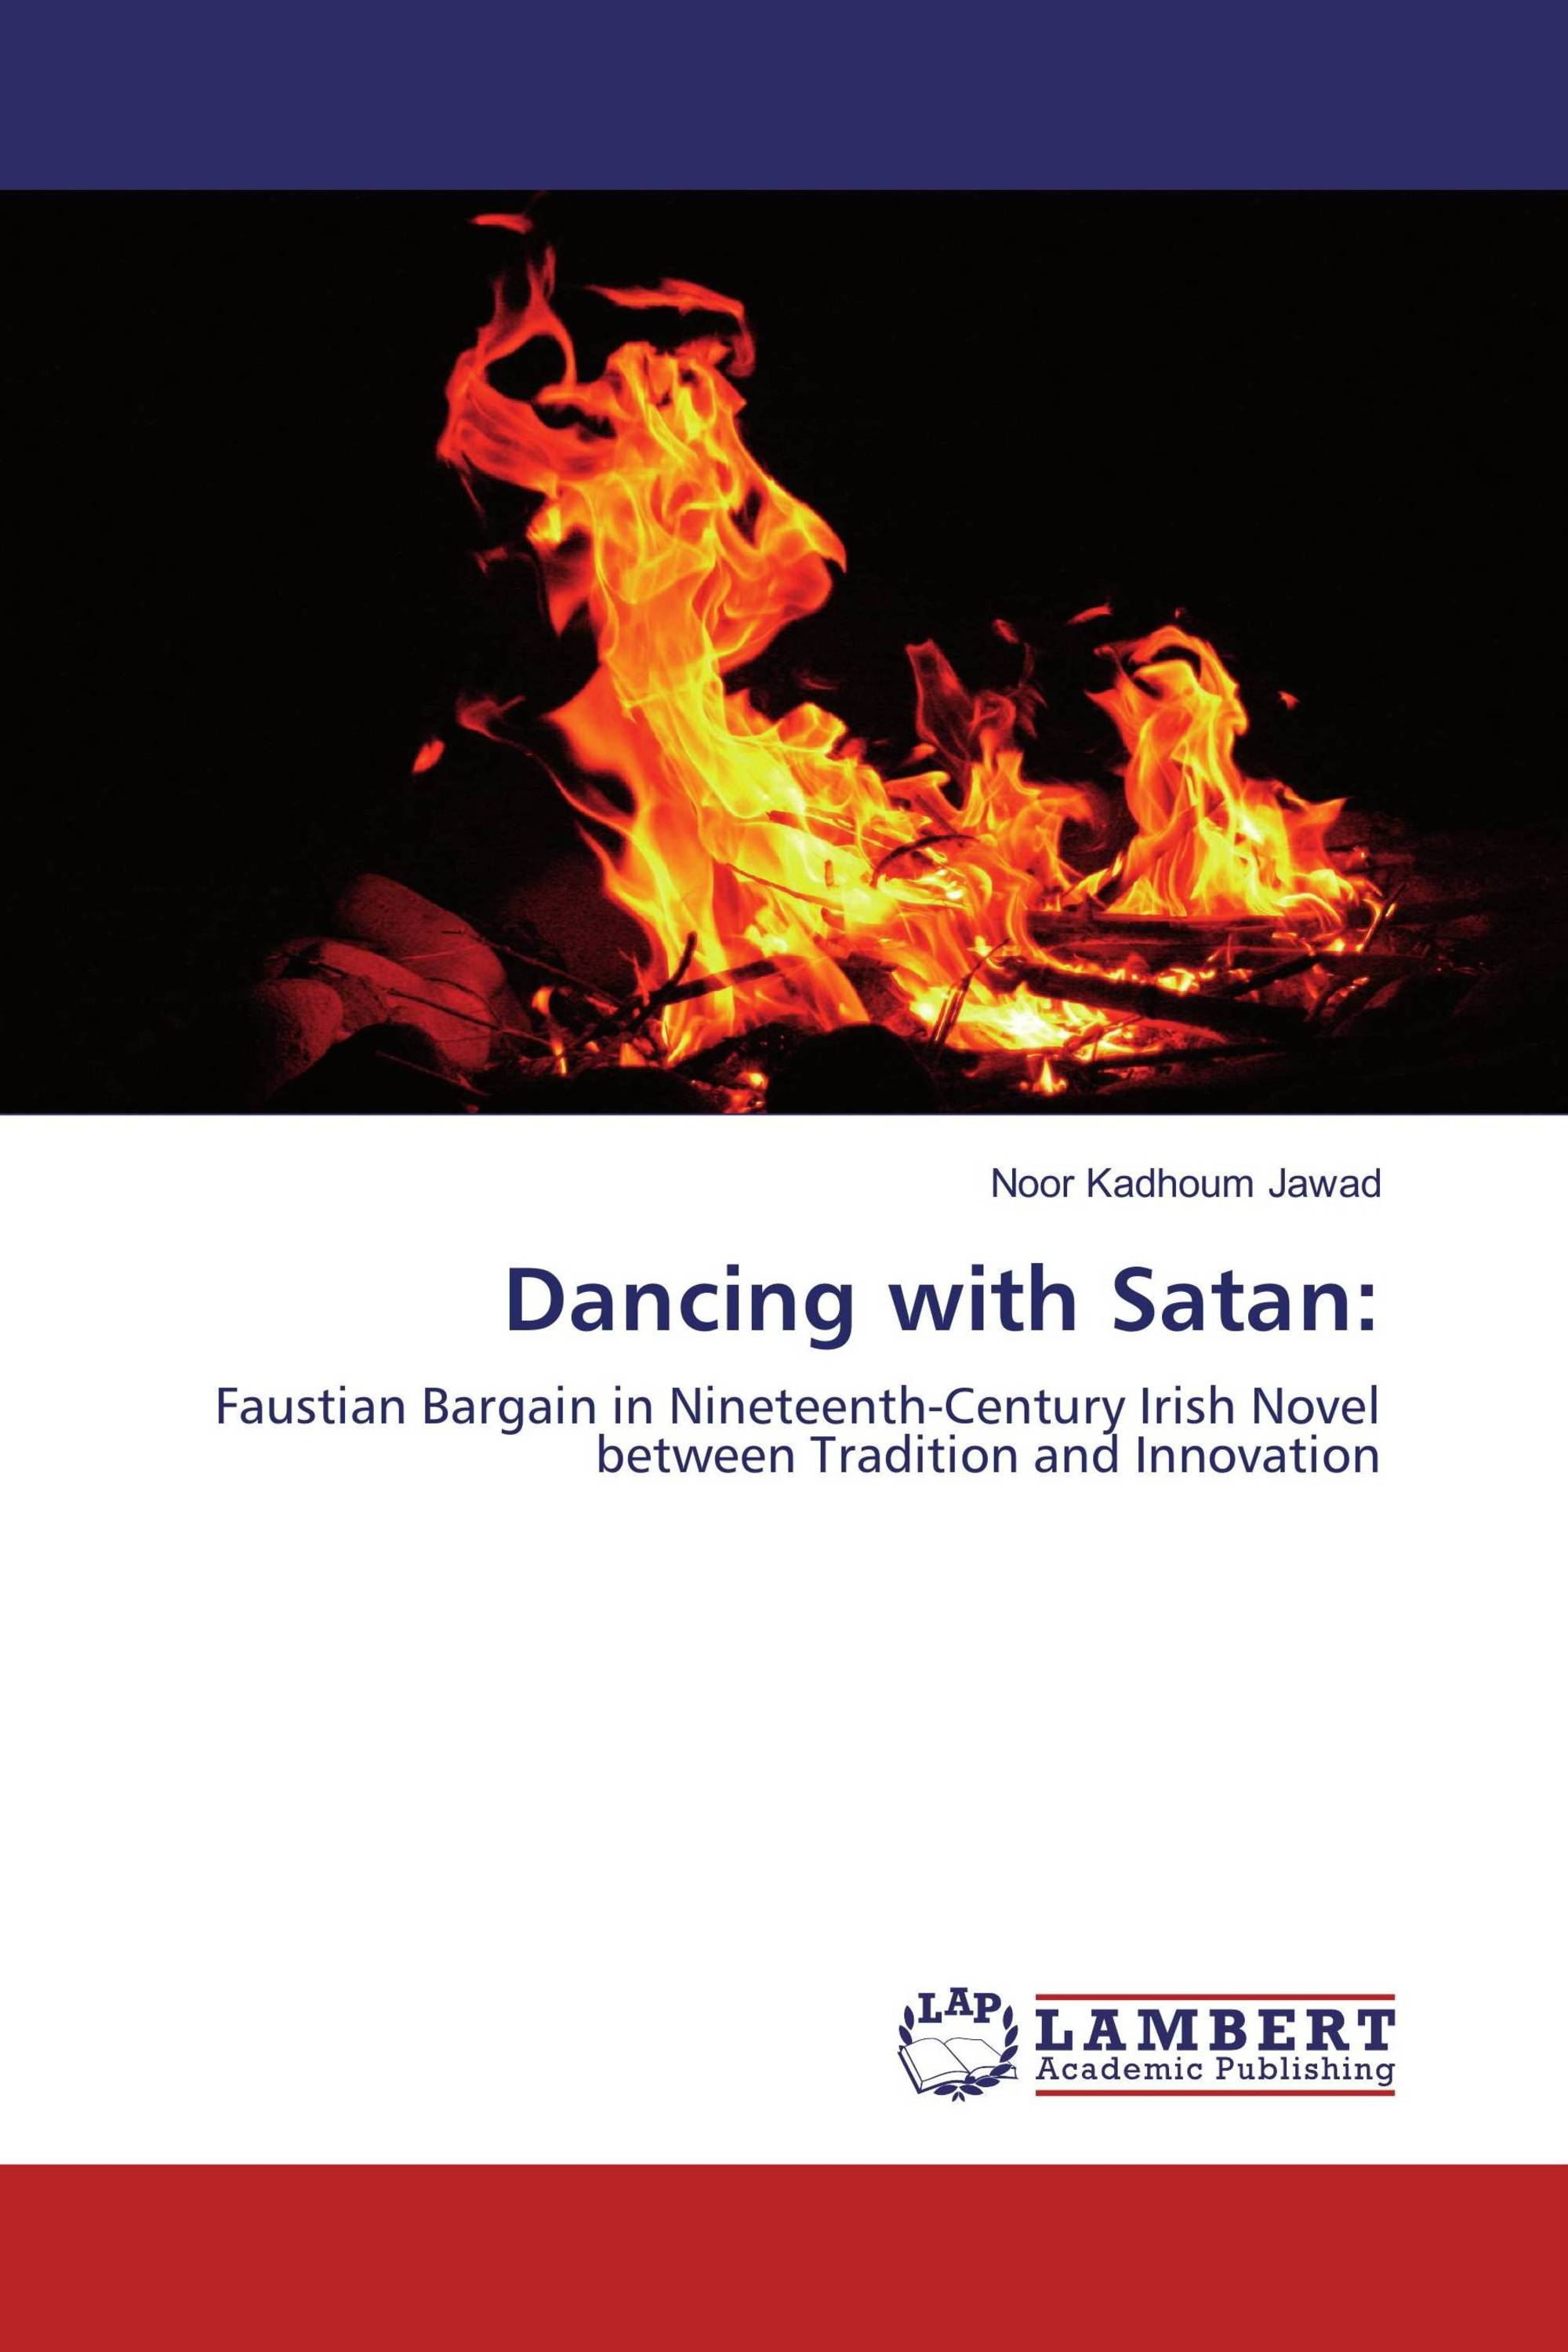 faustian bargain prac essay complete All exampleessayscom members take advantage of the following benefits: access to over 100,000 complete essays and term papers fully built.